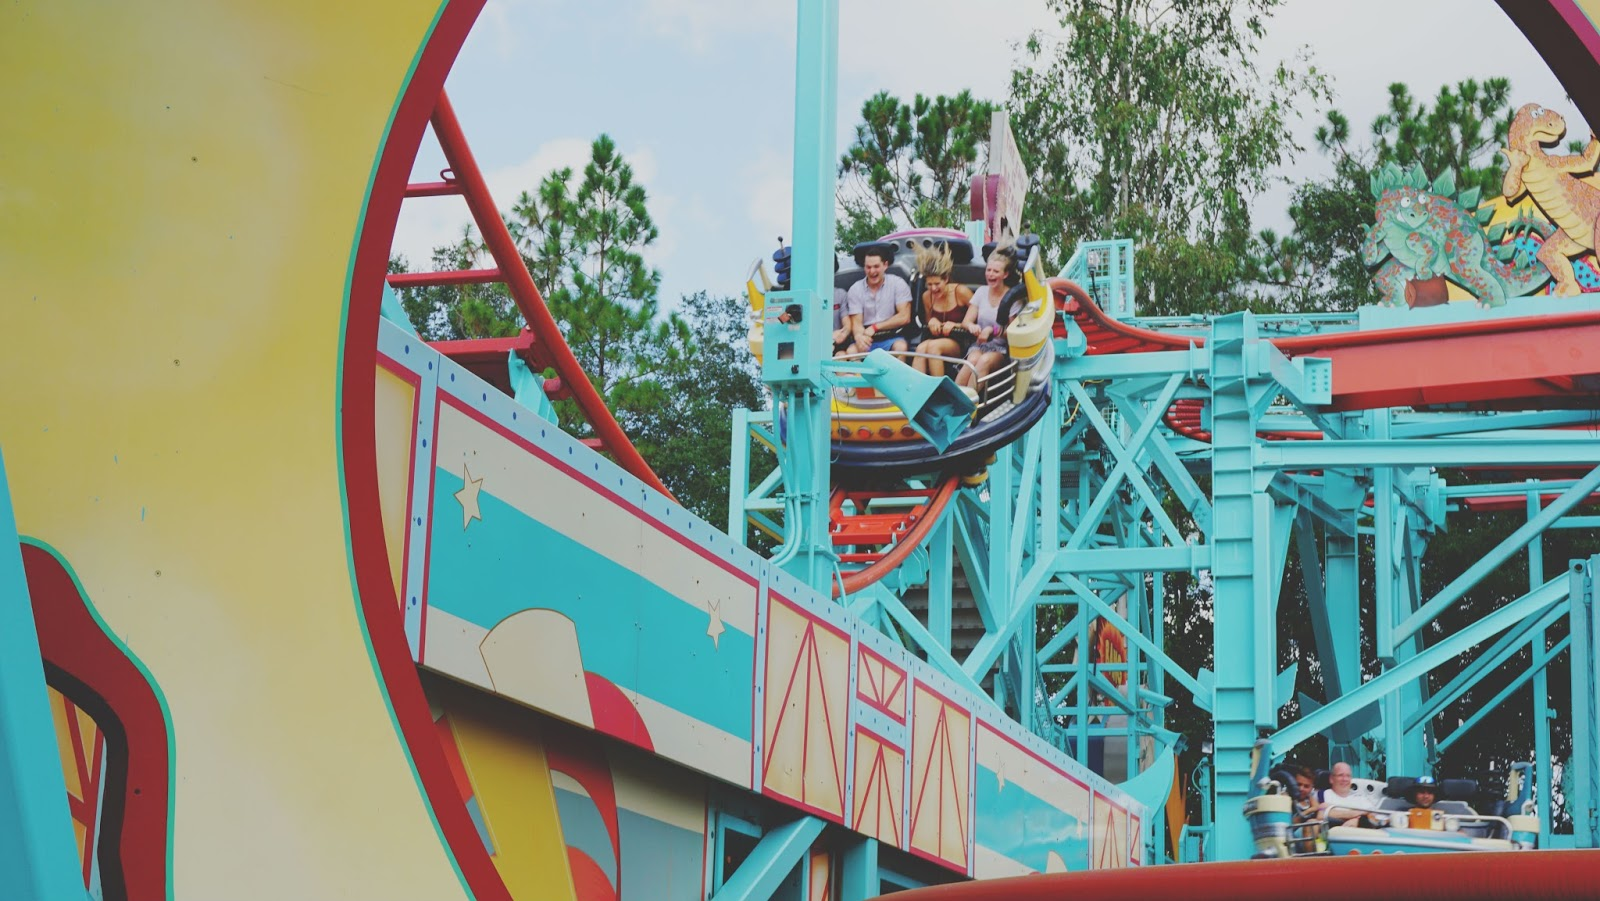 Primeval Whirl at Animal Kingdom in Disney World, Florida